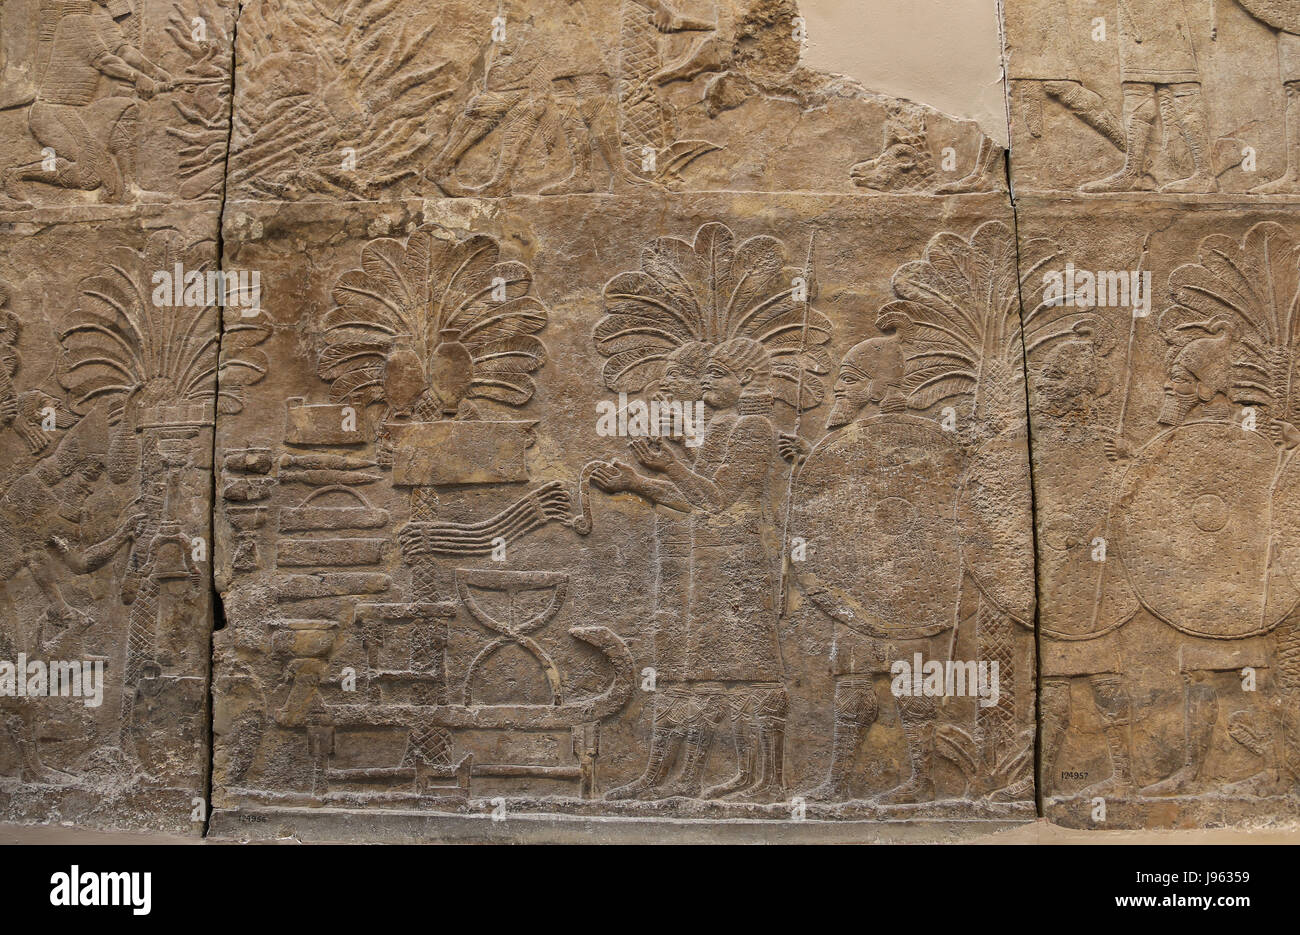 La campagne du sud de l'Irak. Butin de guerre. L'assyrien, 640-620 BC. Ninive, South-West Palace, de l'Iraq. Photo Stock